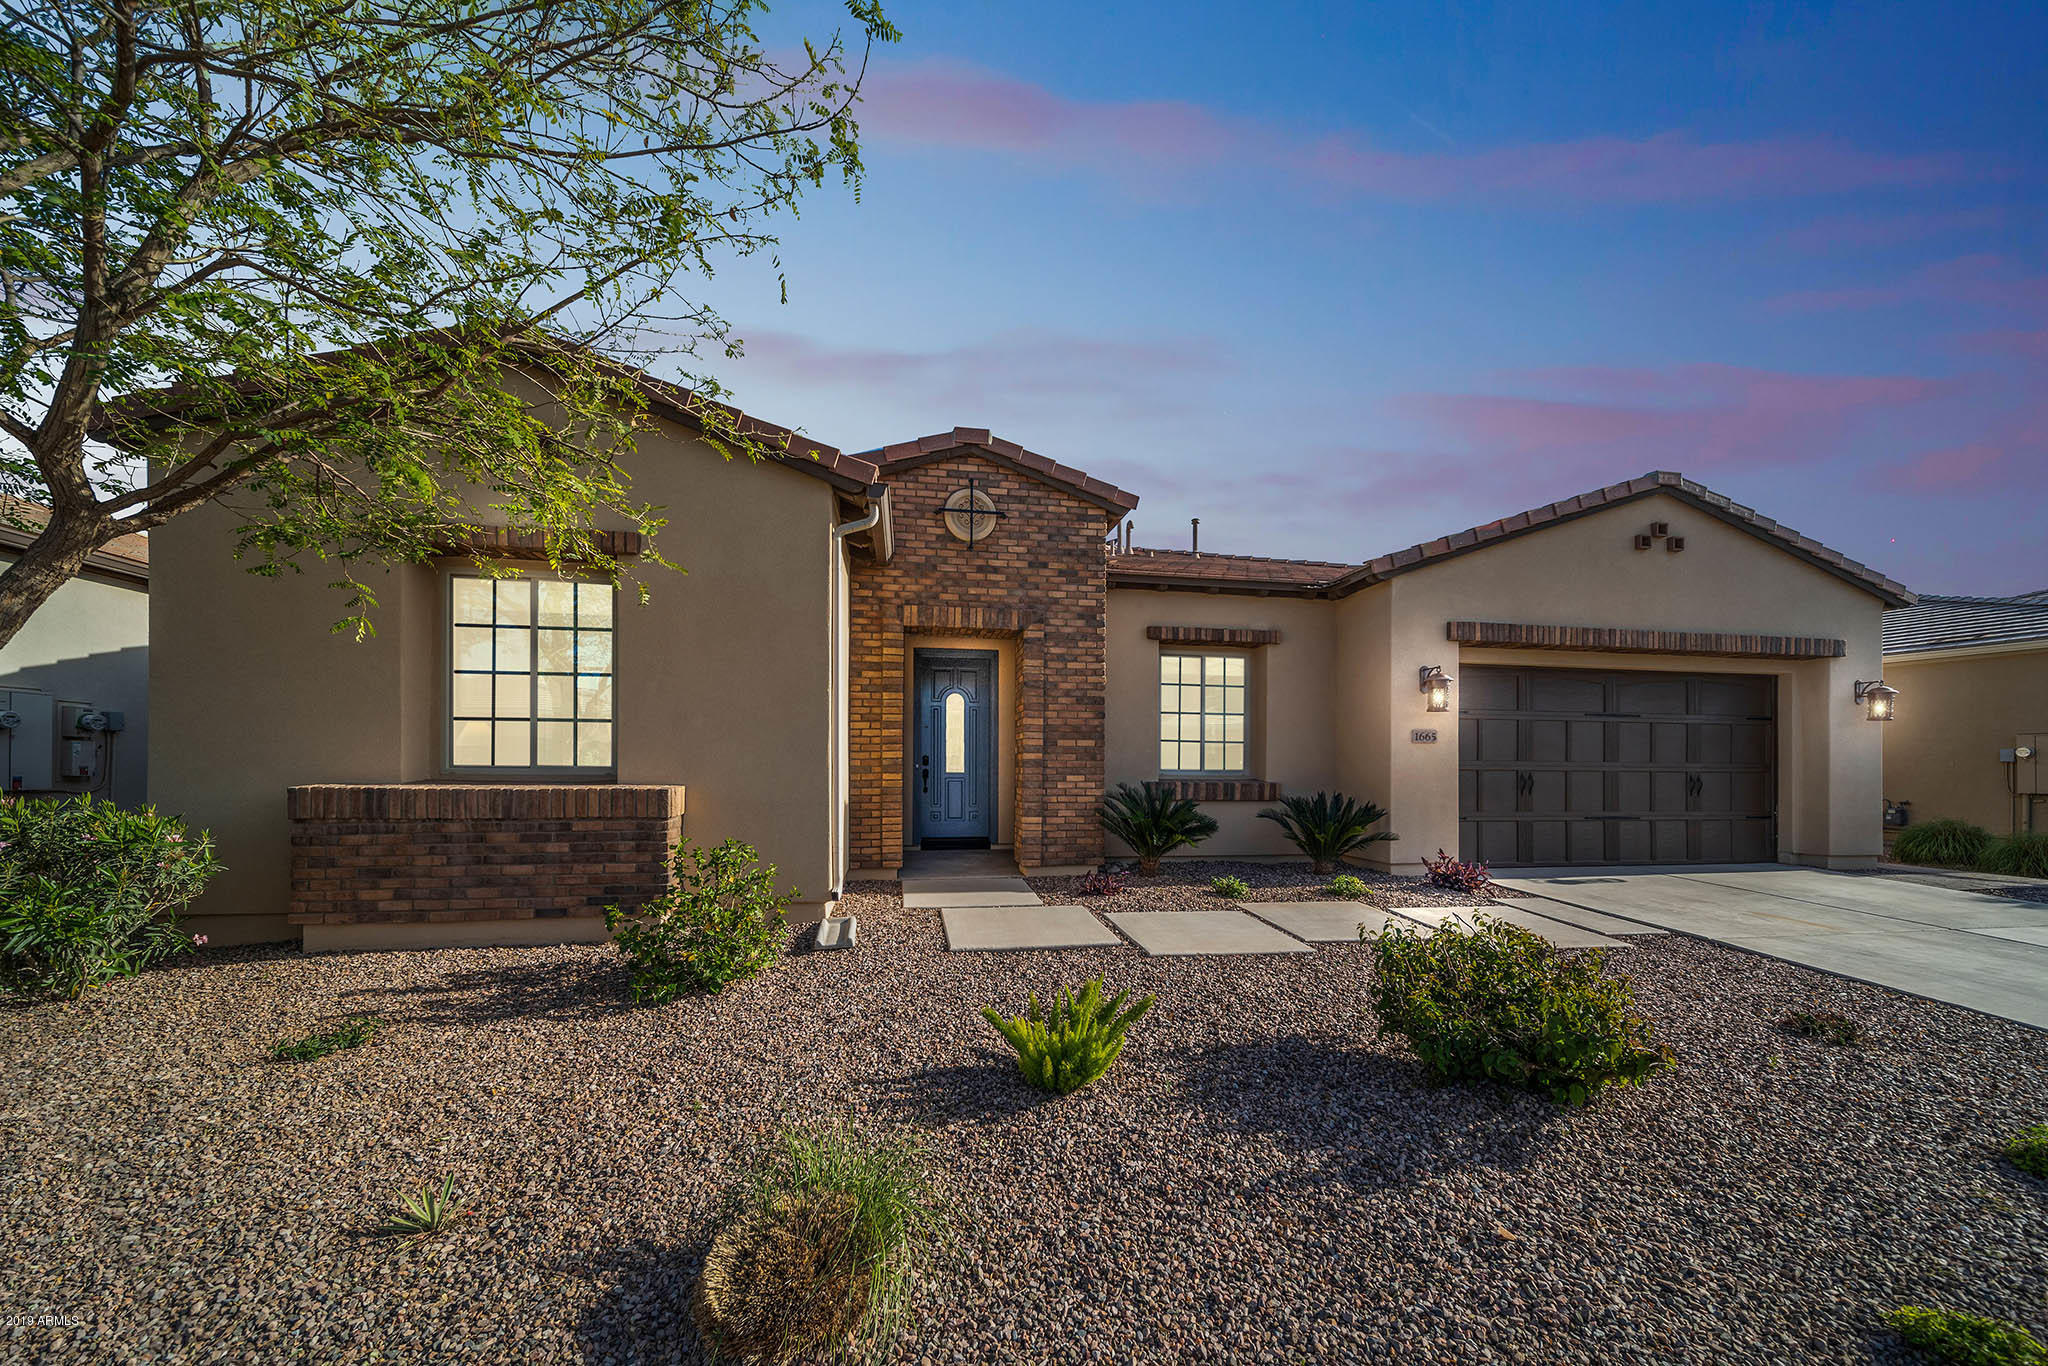 Photo of 1665 E VERDE Boulevard, San Tan Valley, AZ 85140